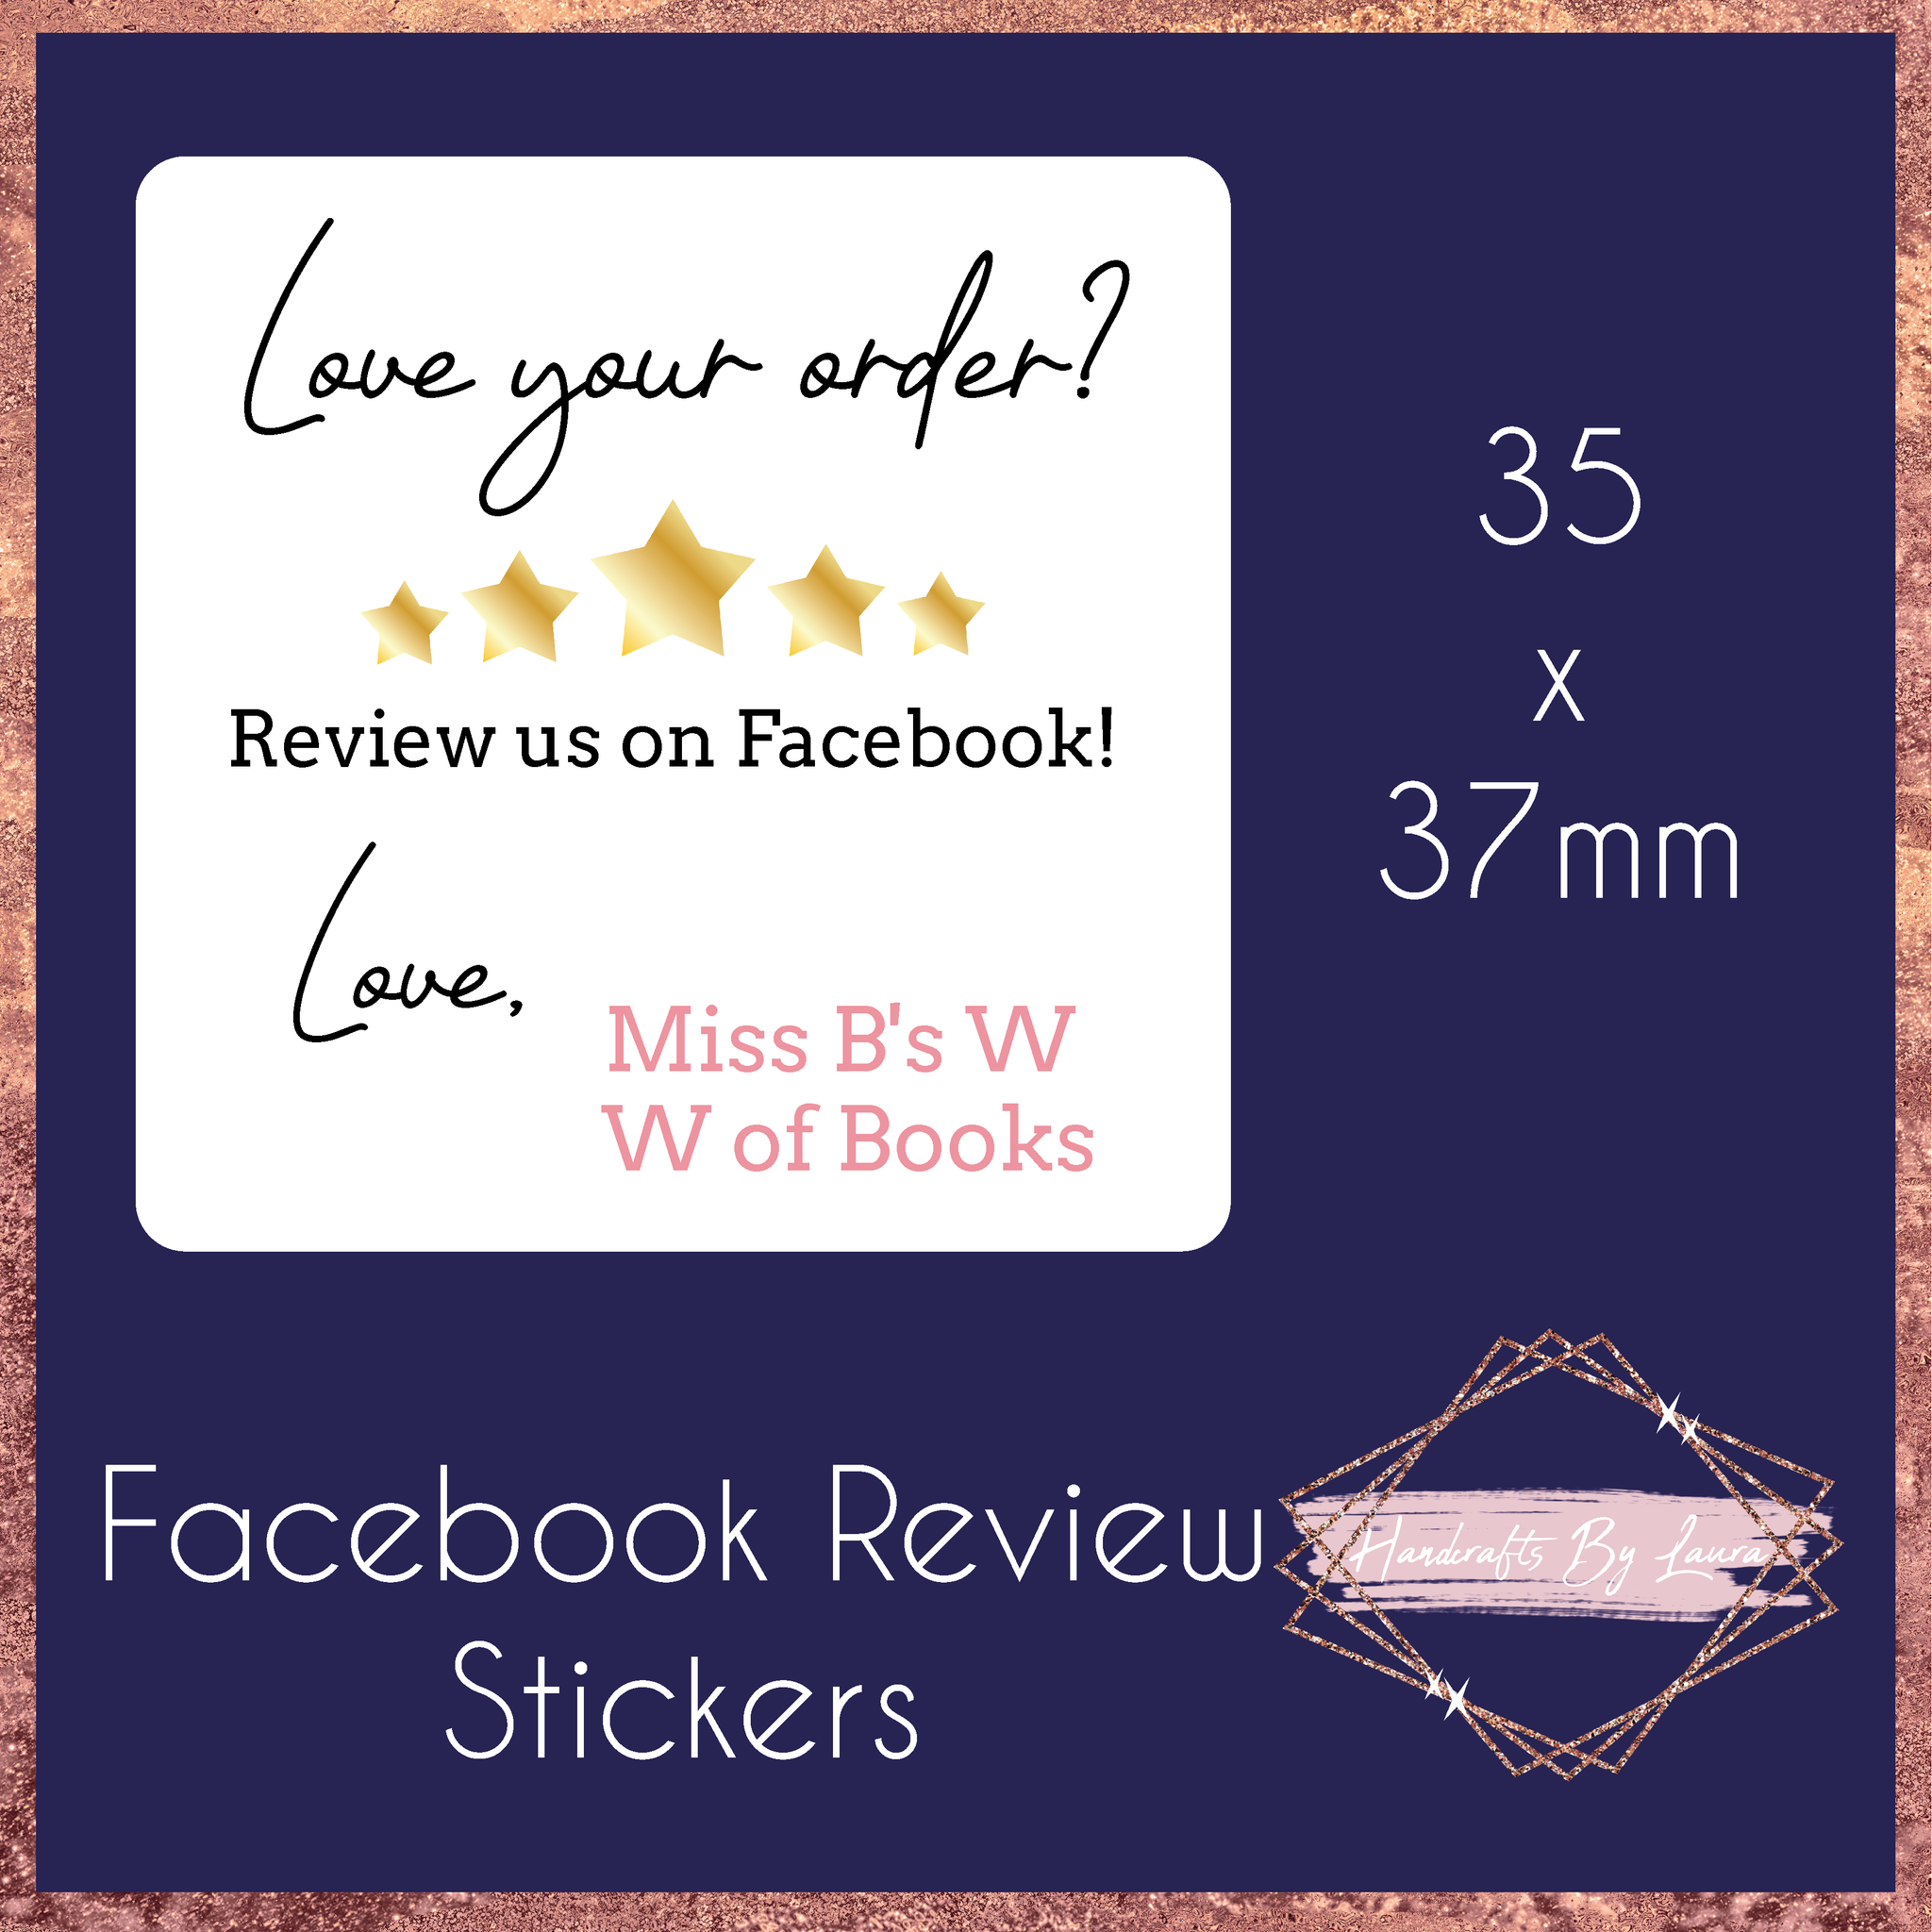 Facebook Review Stickers